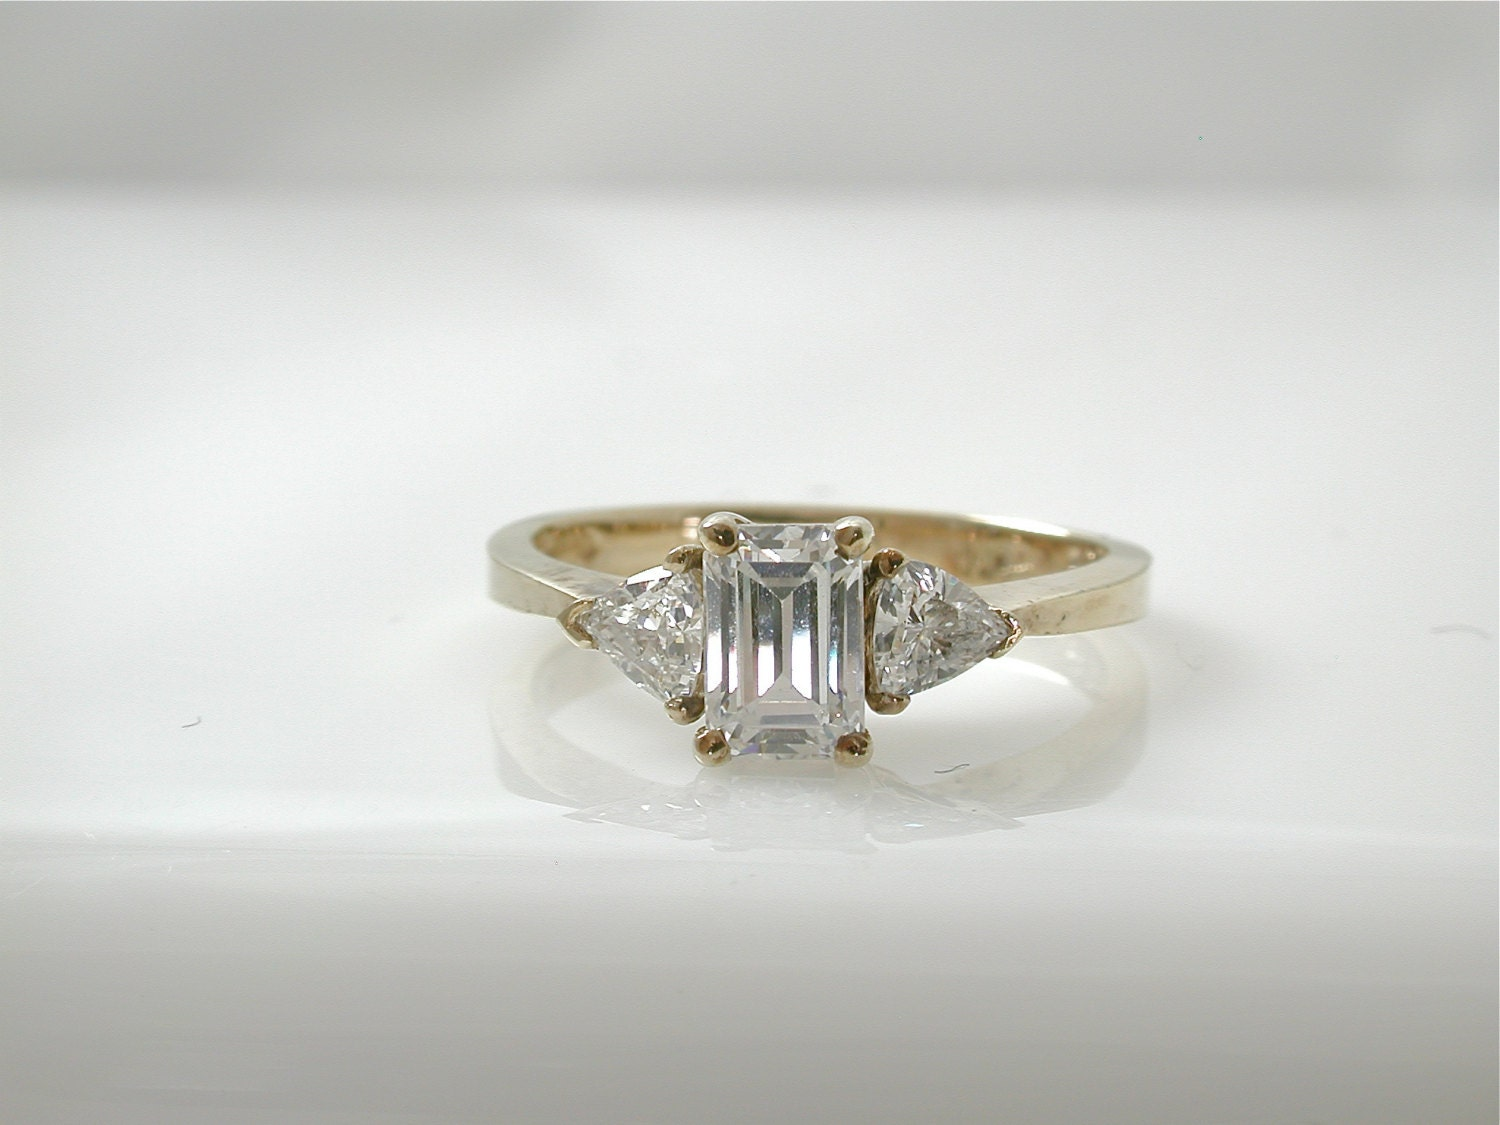 emerald cut cubic zirconia ring trillion cut by djvintageshop